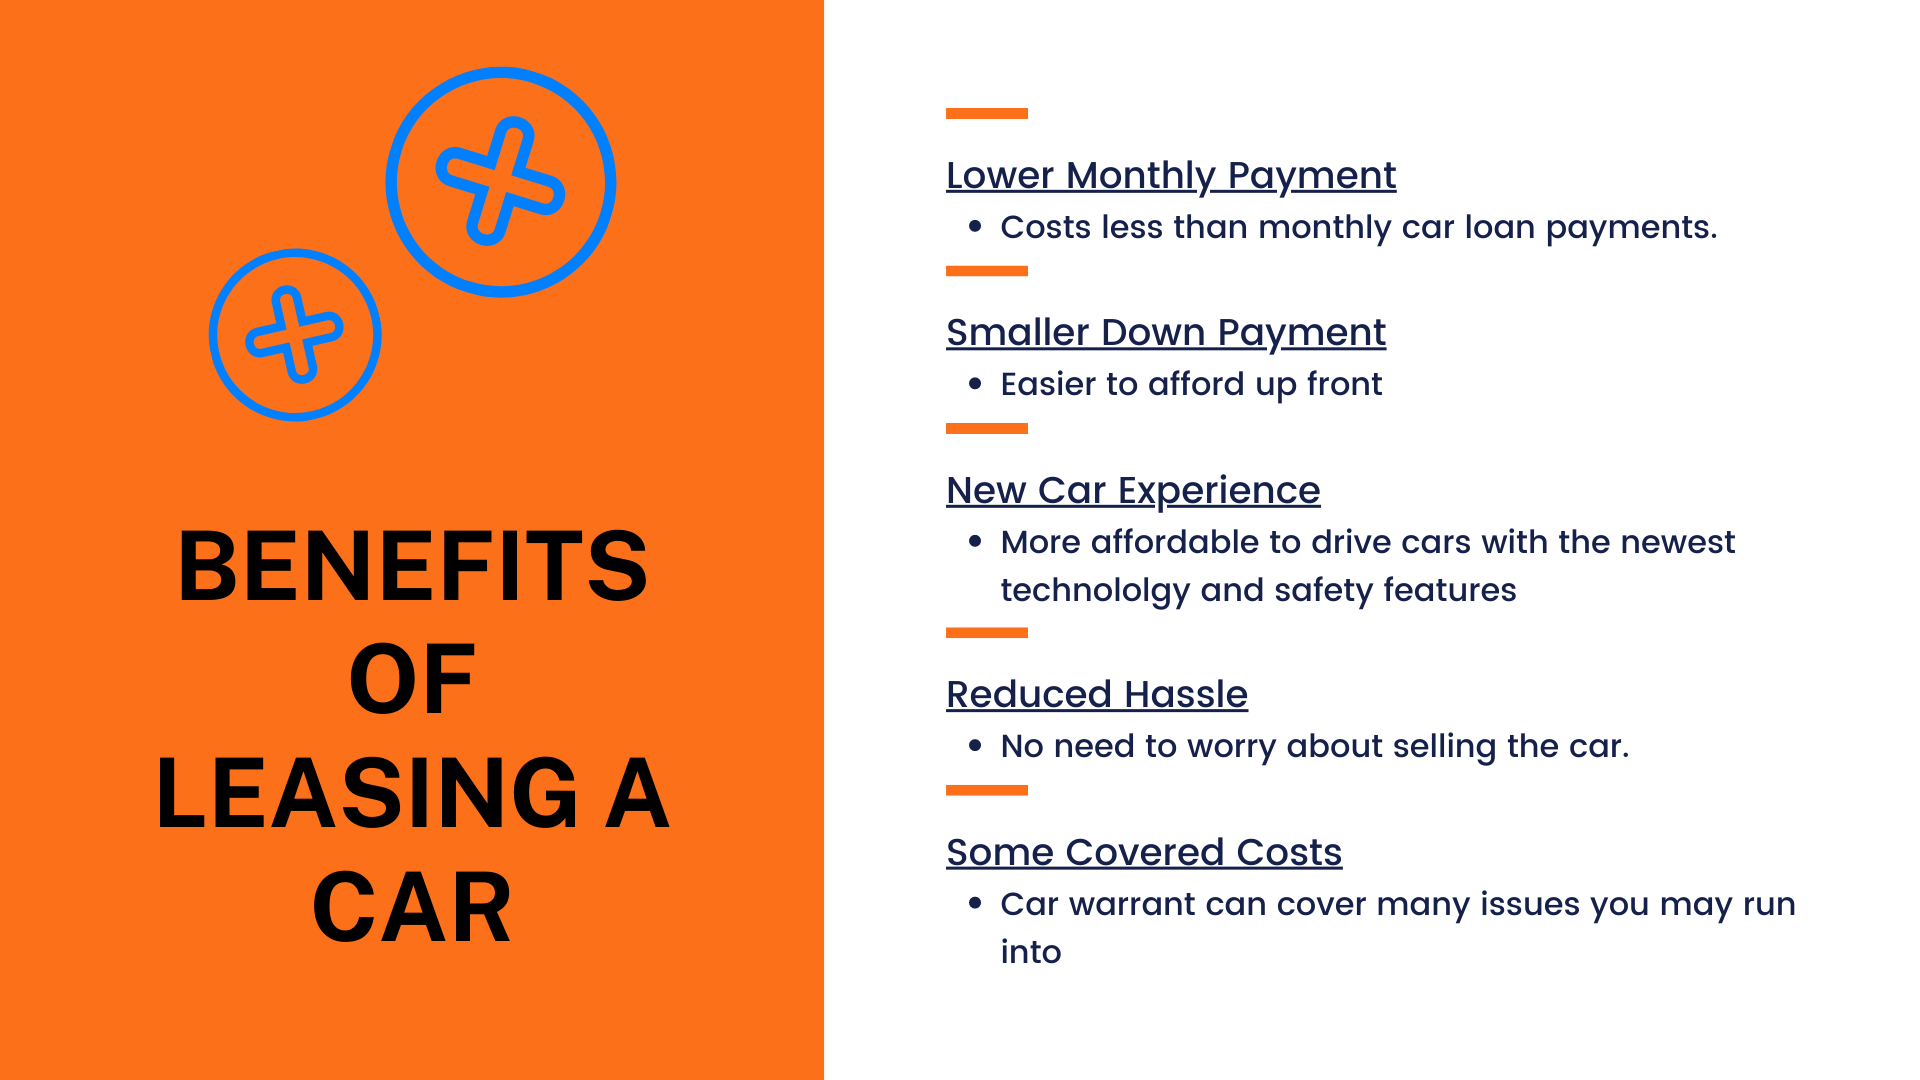 Benefits of Leasing: Lower monthly payment, smaller down payment, new car experience, reduced hassle, same covered costs